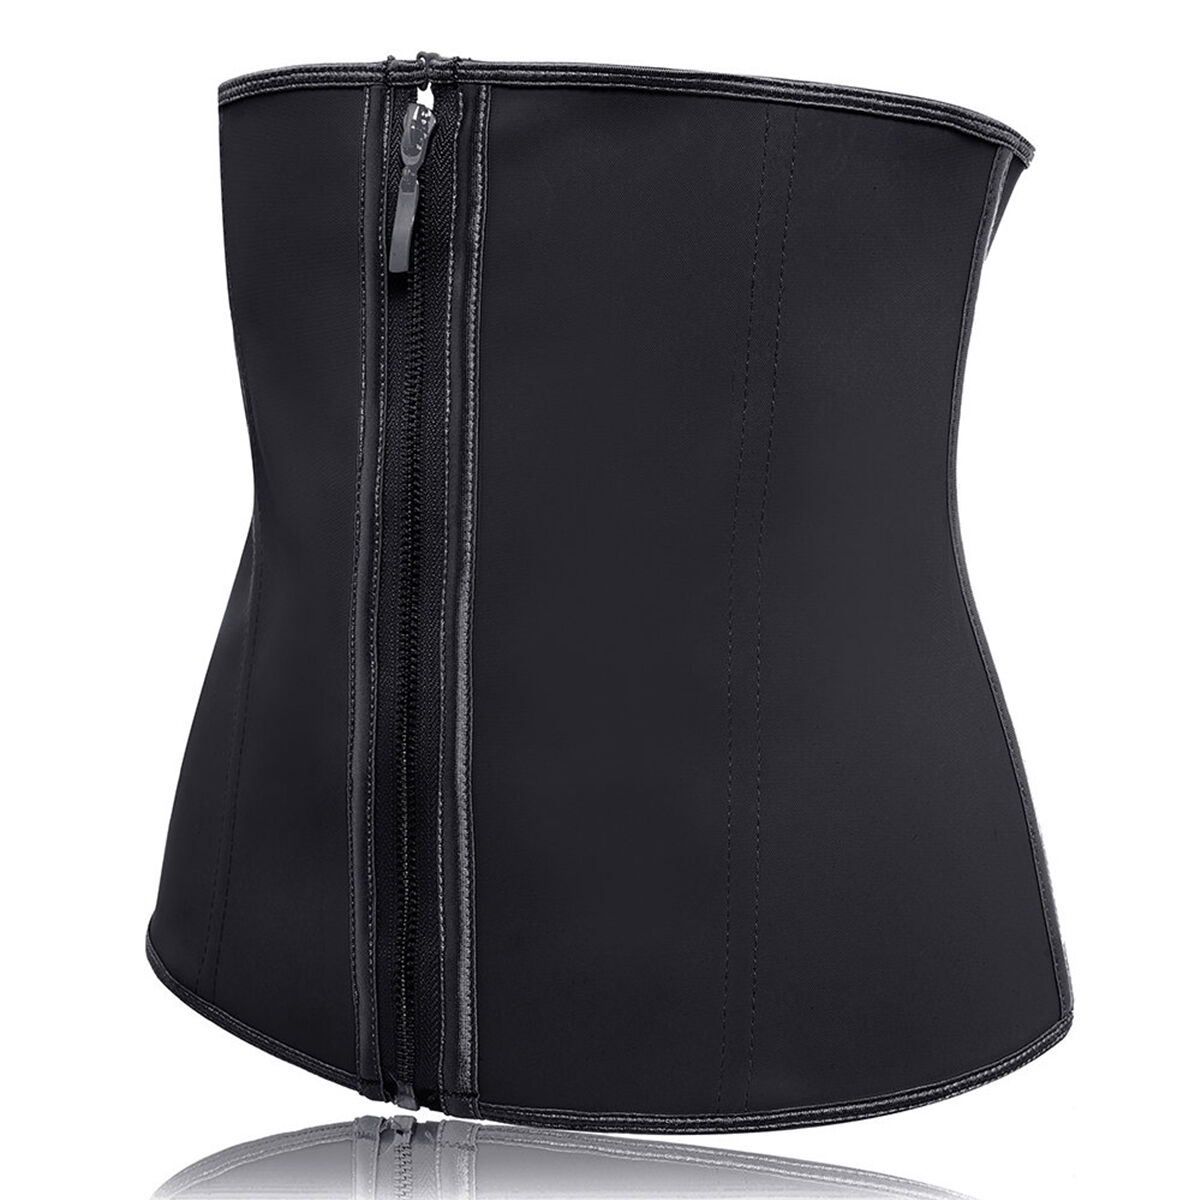 Women's Underbust Latex Slimming Zip Corset Sport Girdle Waist Trainer Cincher Slimming Body Shaper